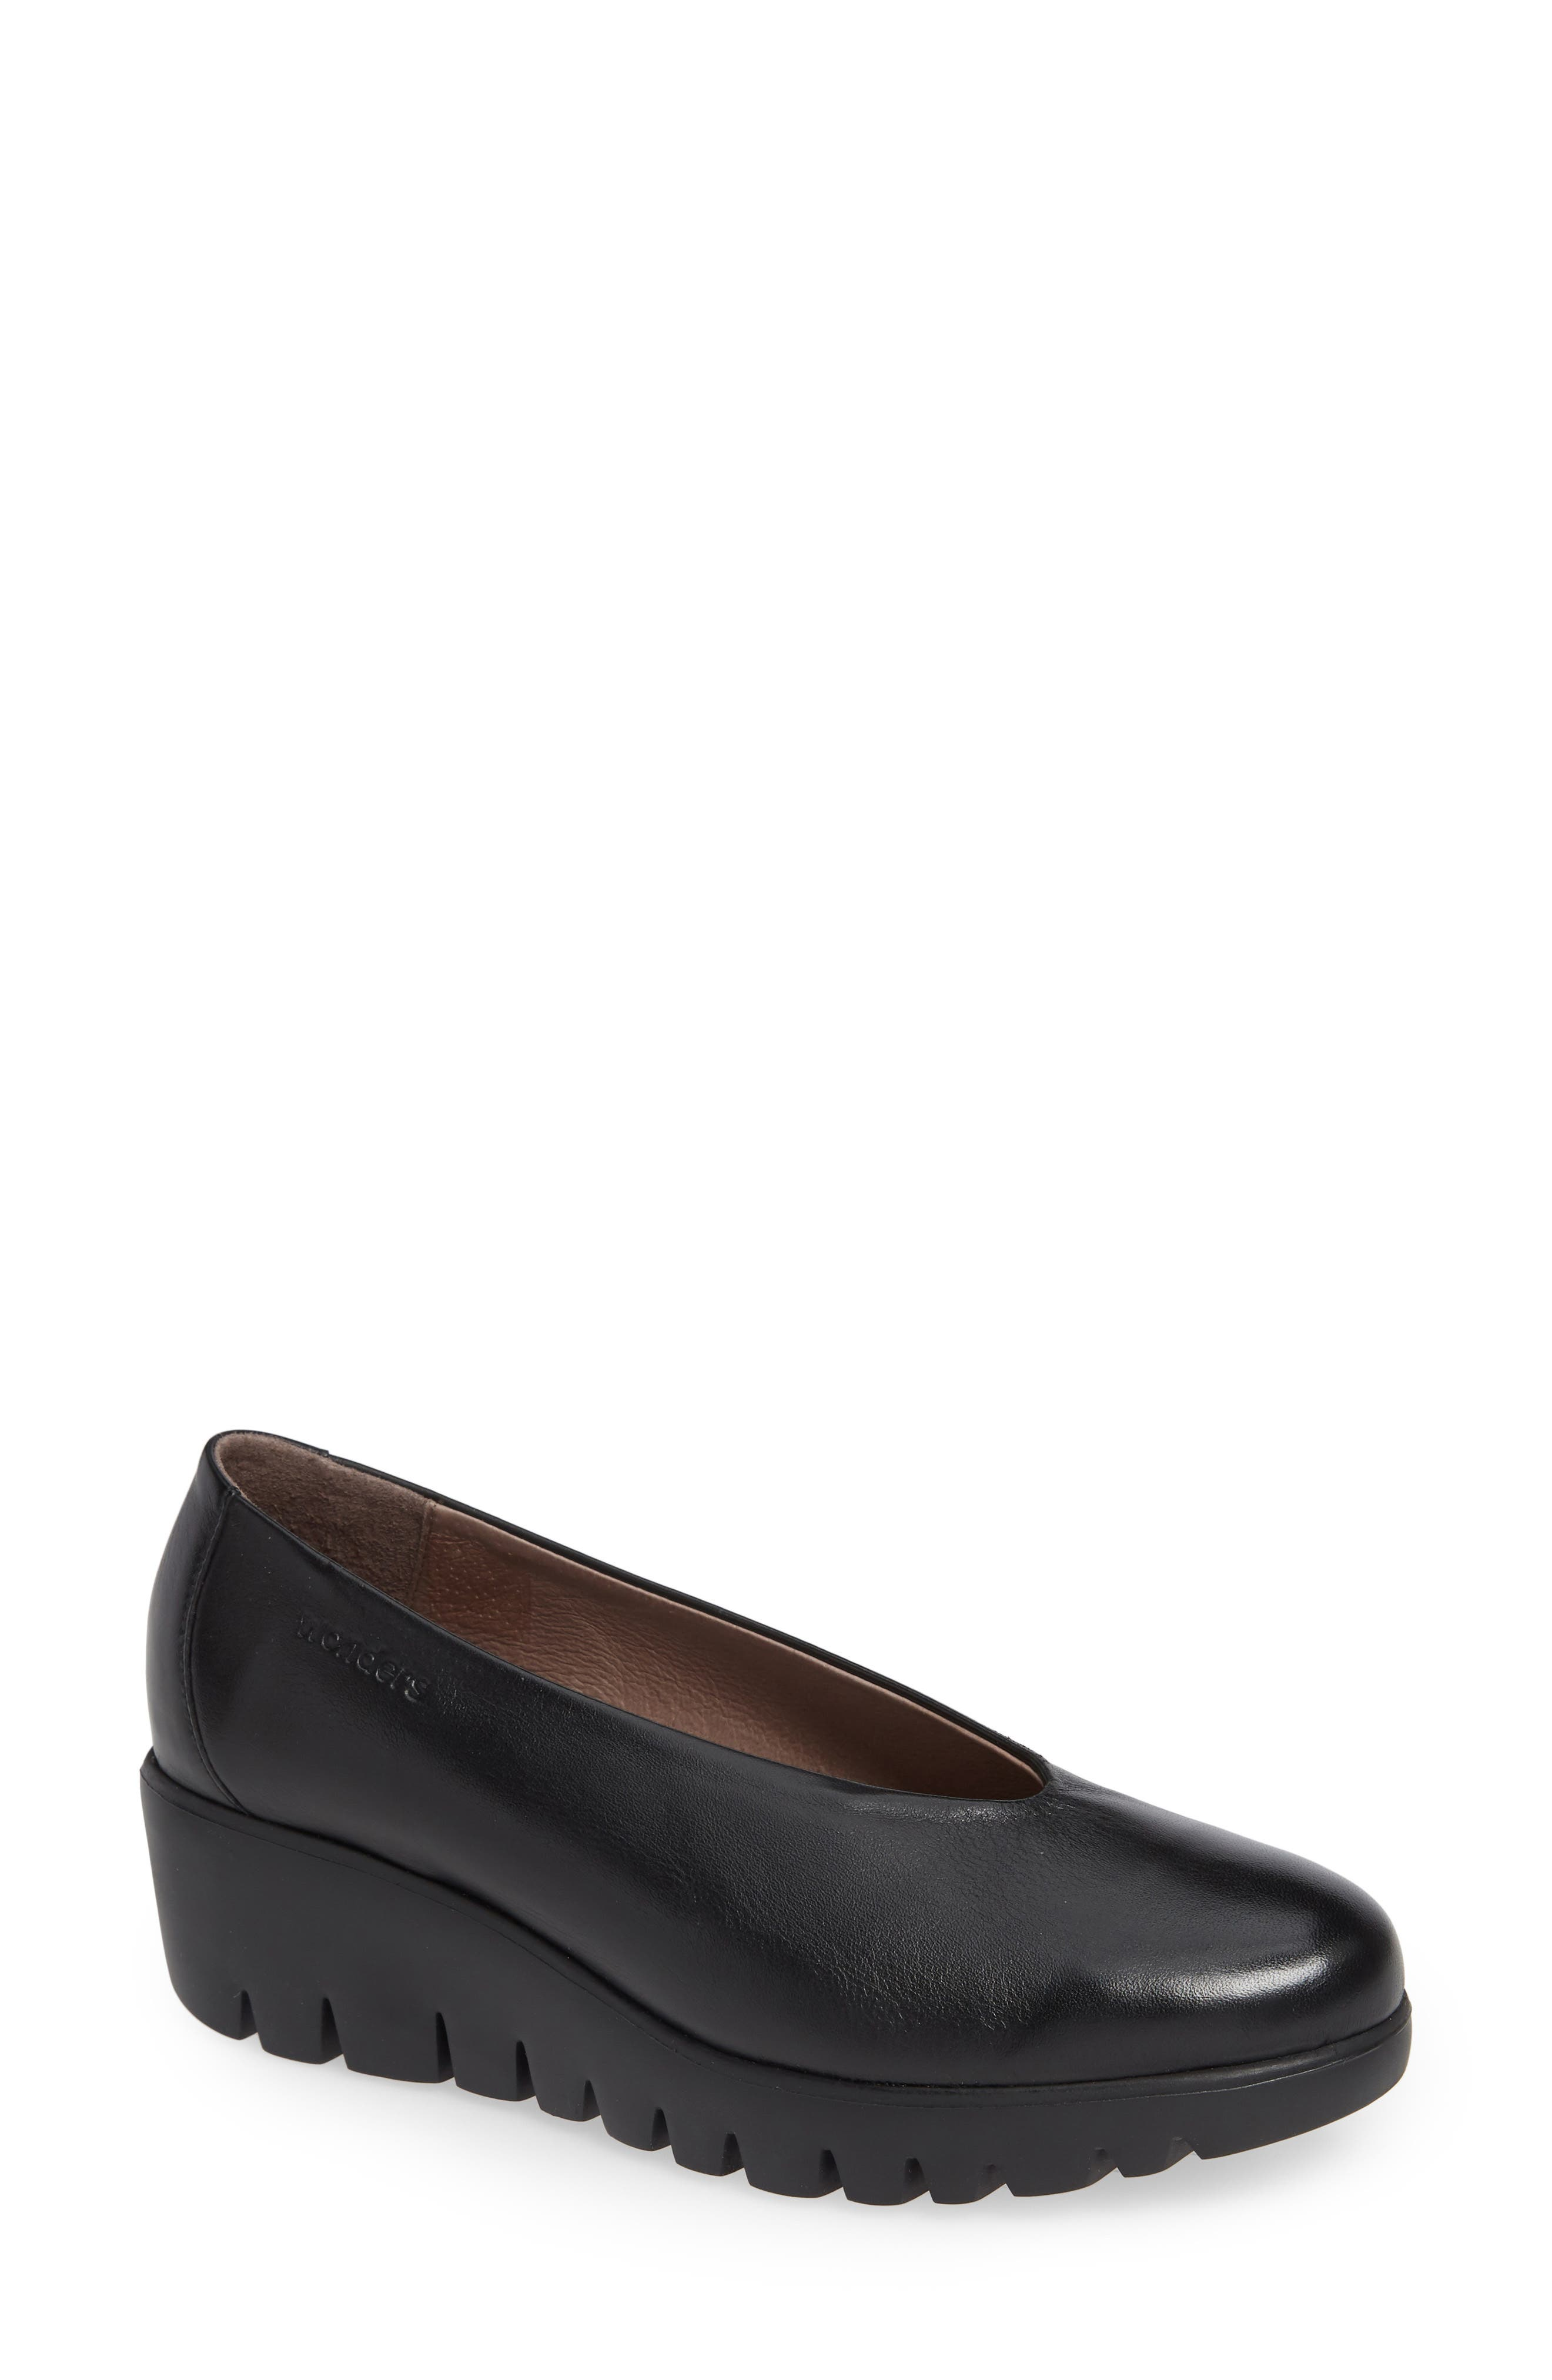 Extralite Wedge Pump,                         Main,                         color, BLACK LEATHER